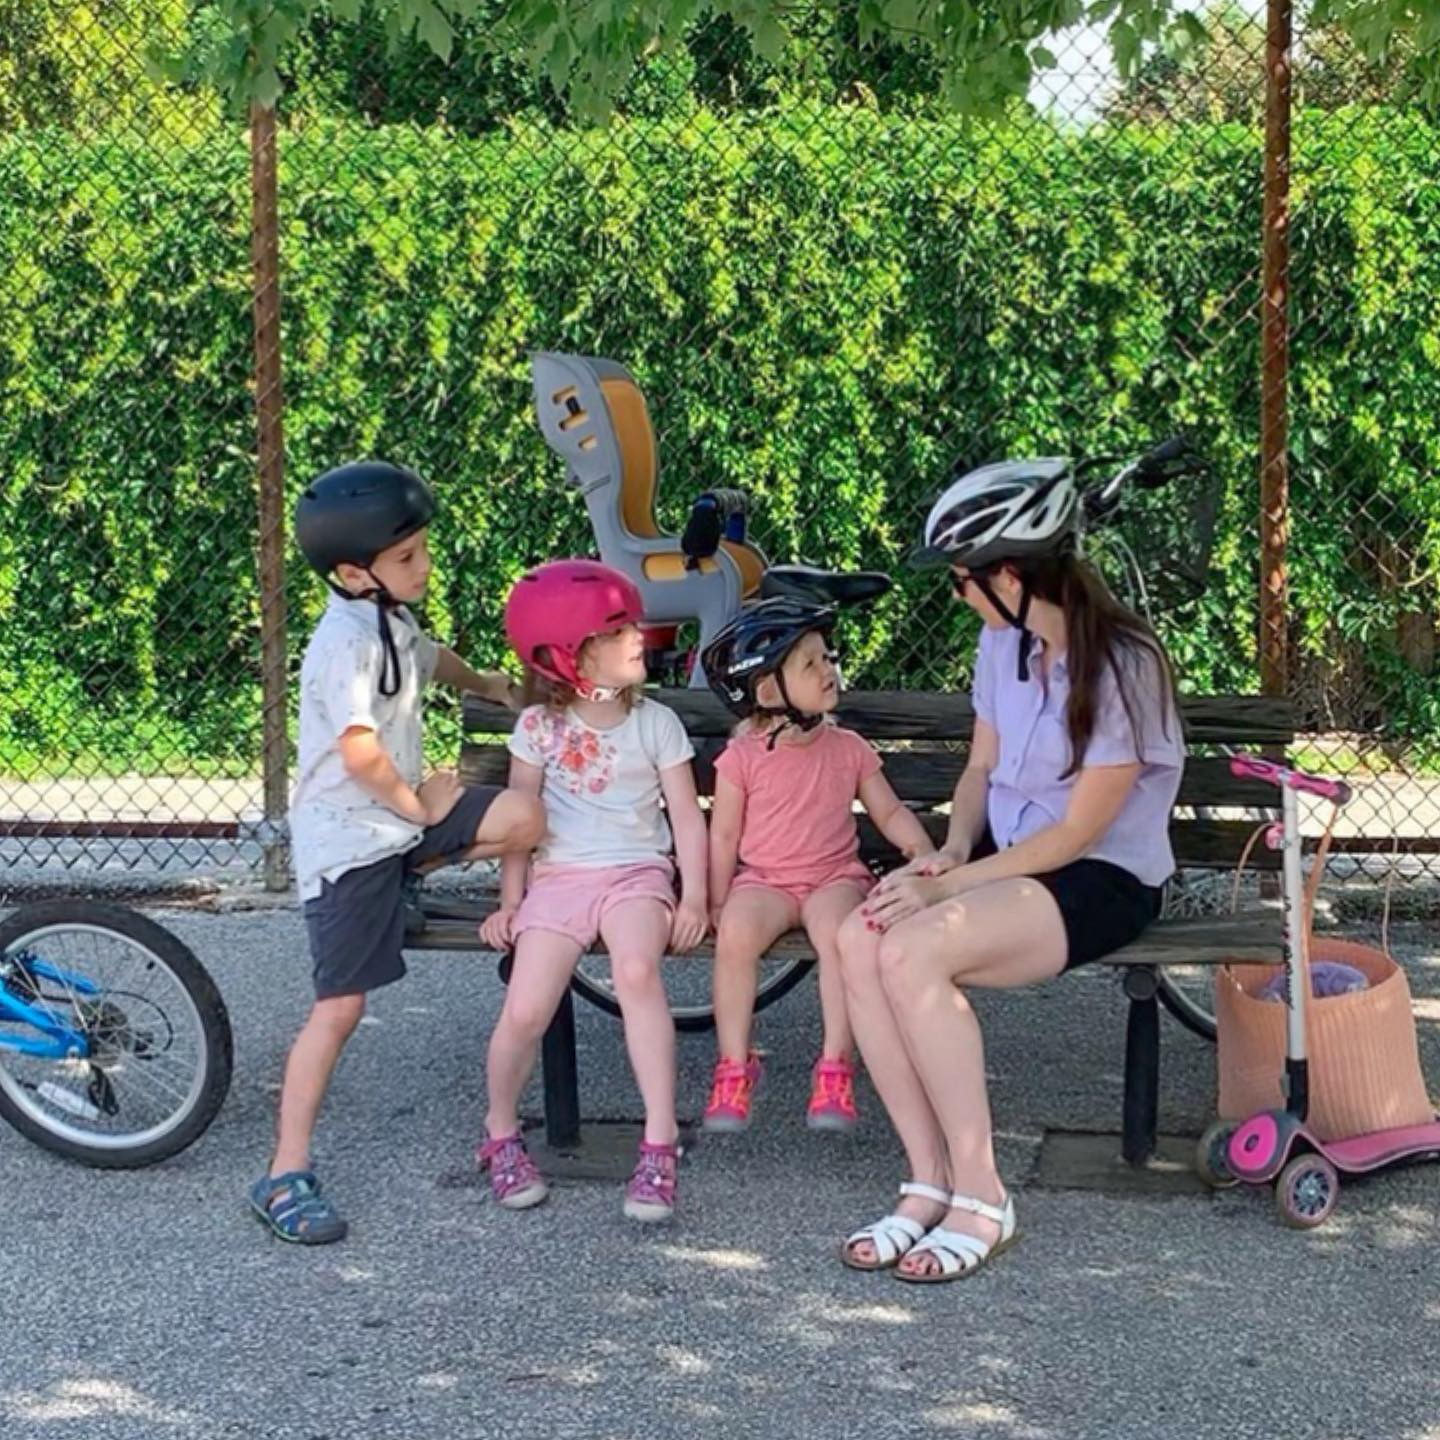 3 Summer Safety Essentials for Families